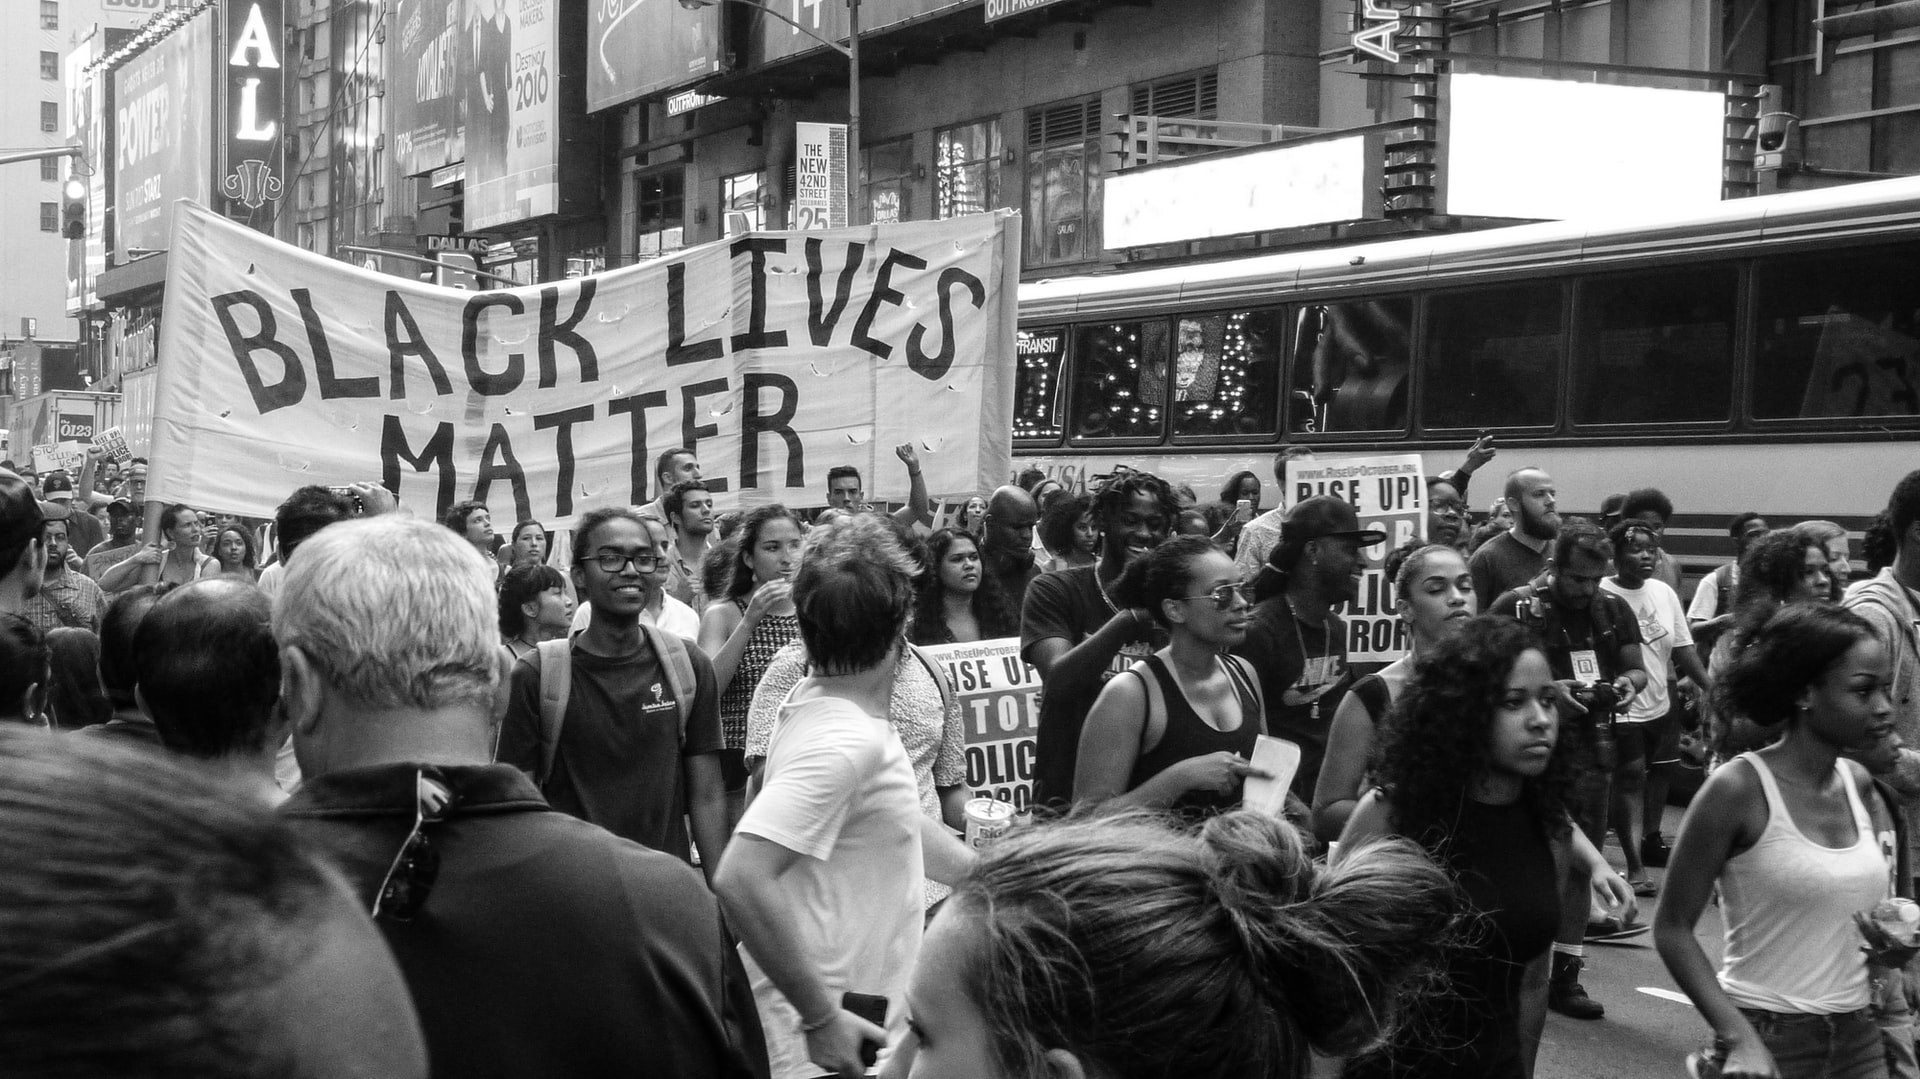 NYC, USA - BLM Protests, June 2020